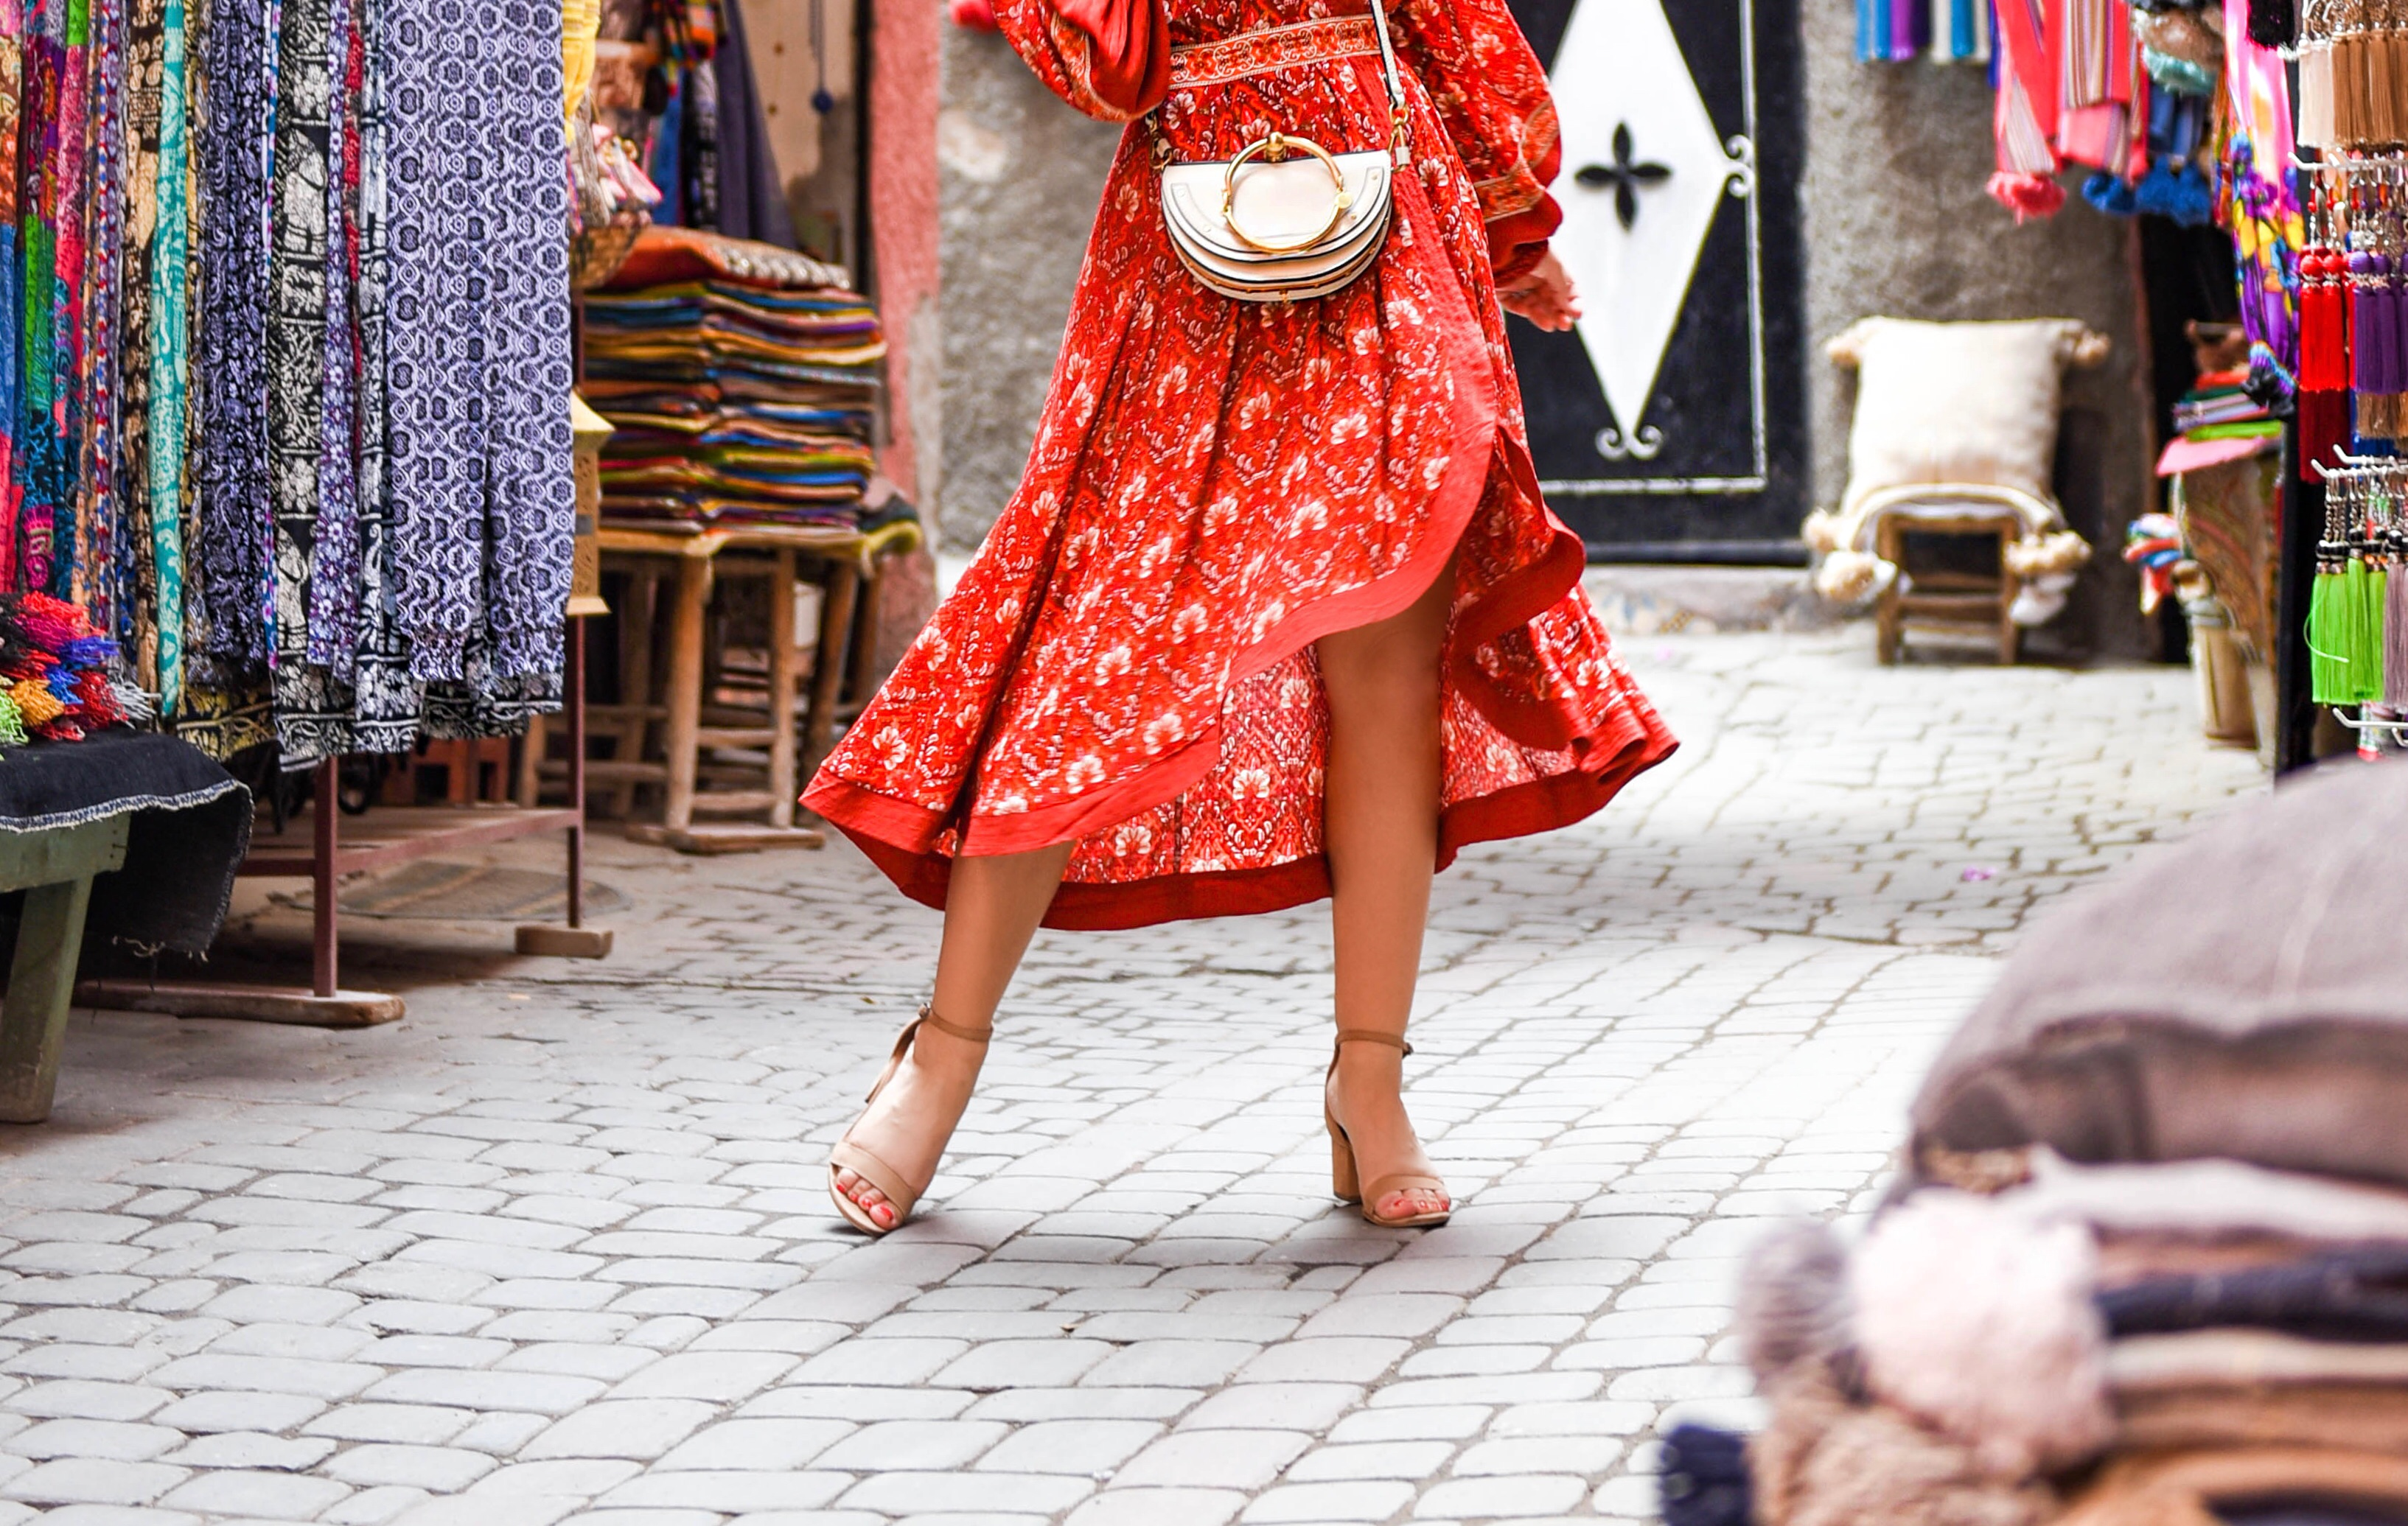 Lo-Murphy-Lo-Murph-Red-Dress-Marrakech-Souks-Spell-Byron-Bay-Travel-Style-Revolve-Dress